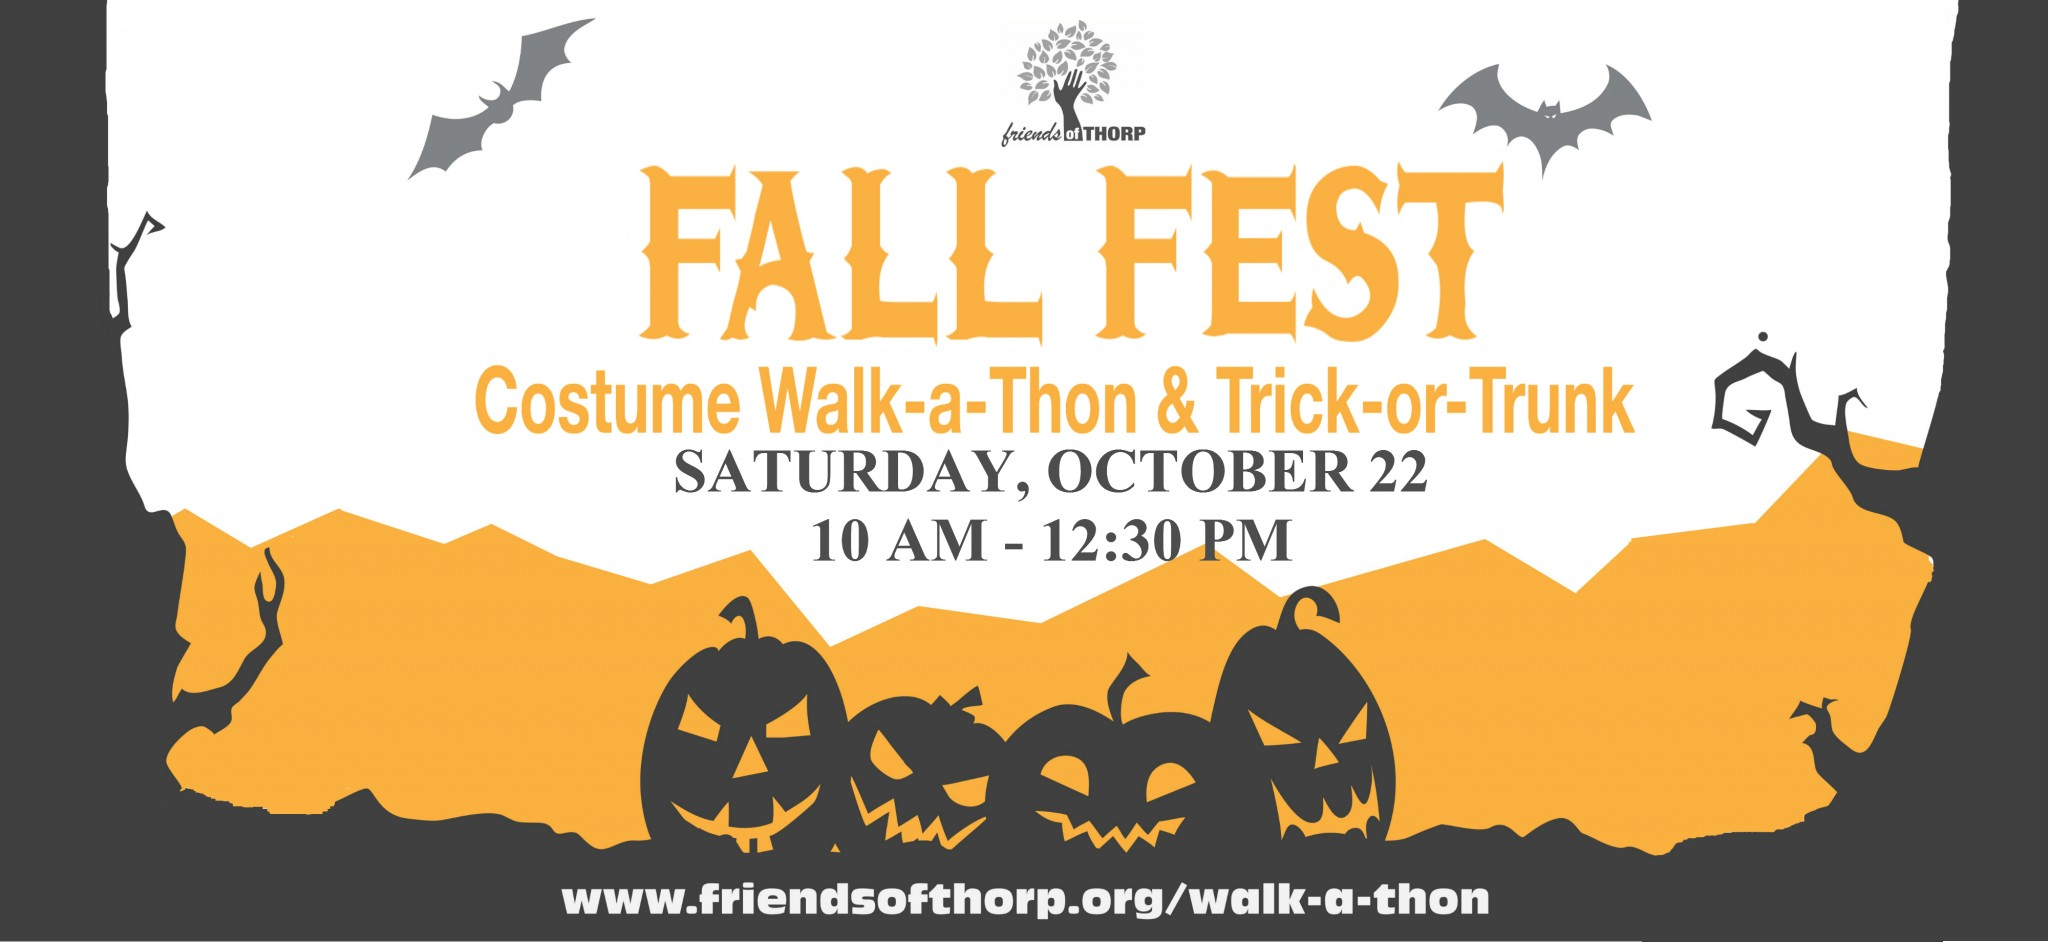 Friends Of Thorp Fall Fest And Walk-a-thon